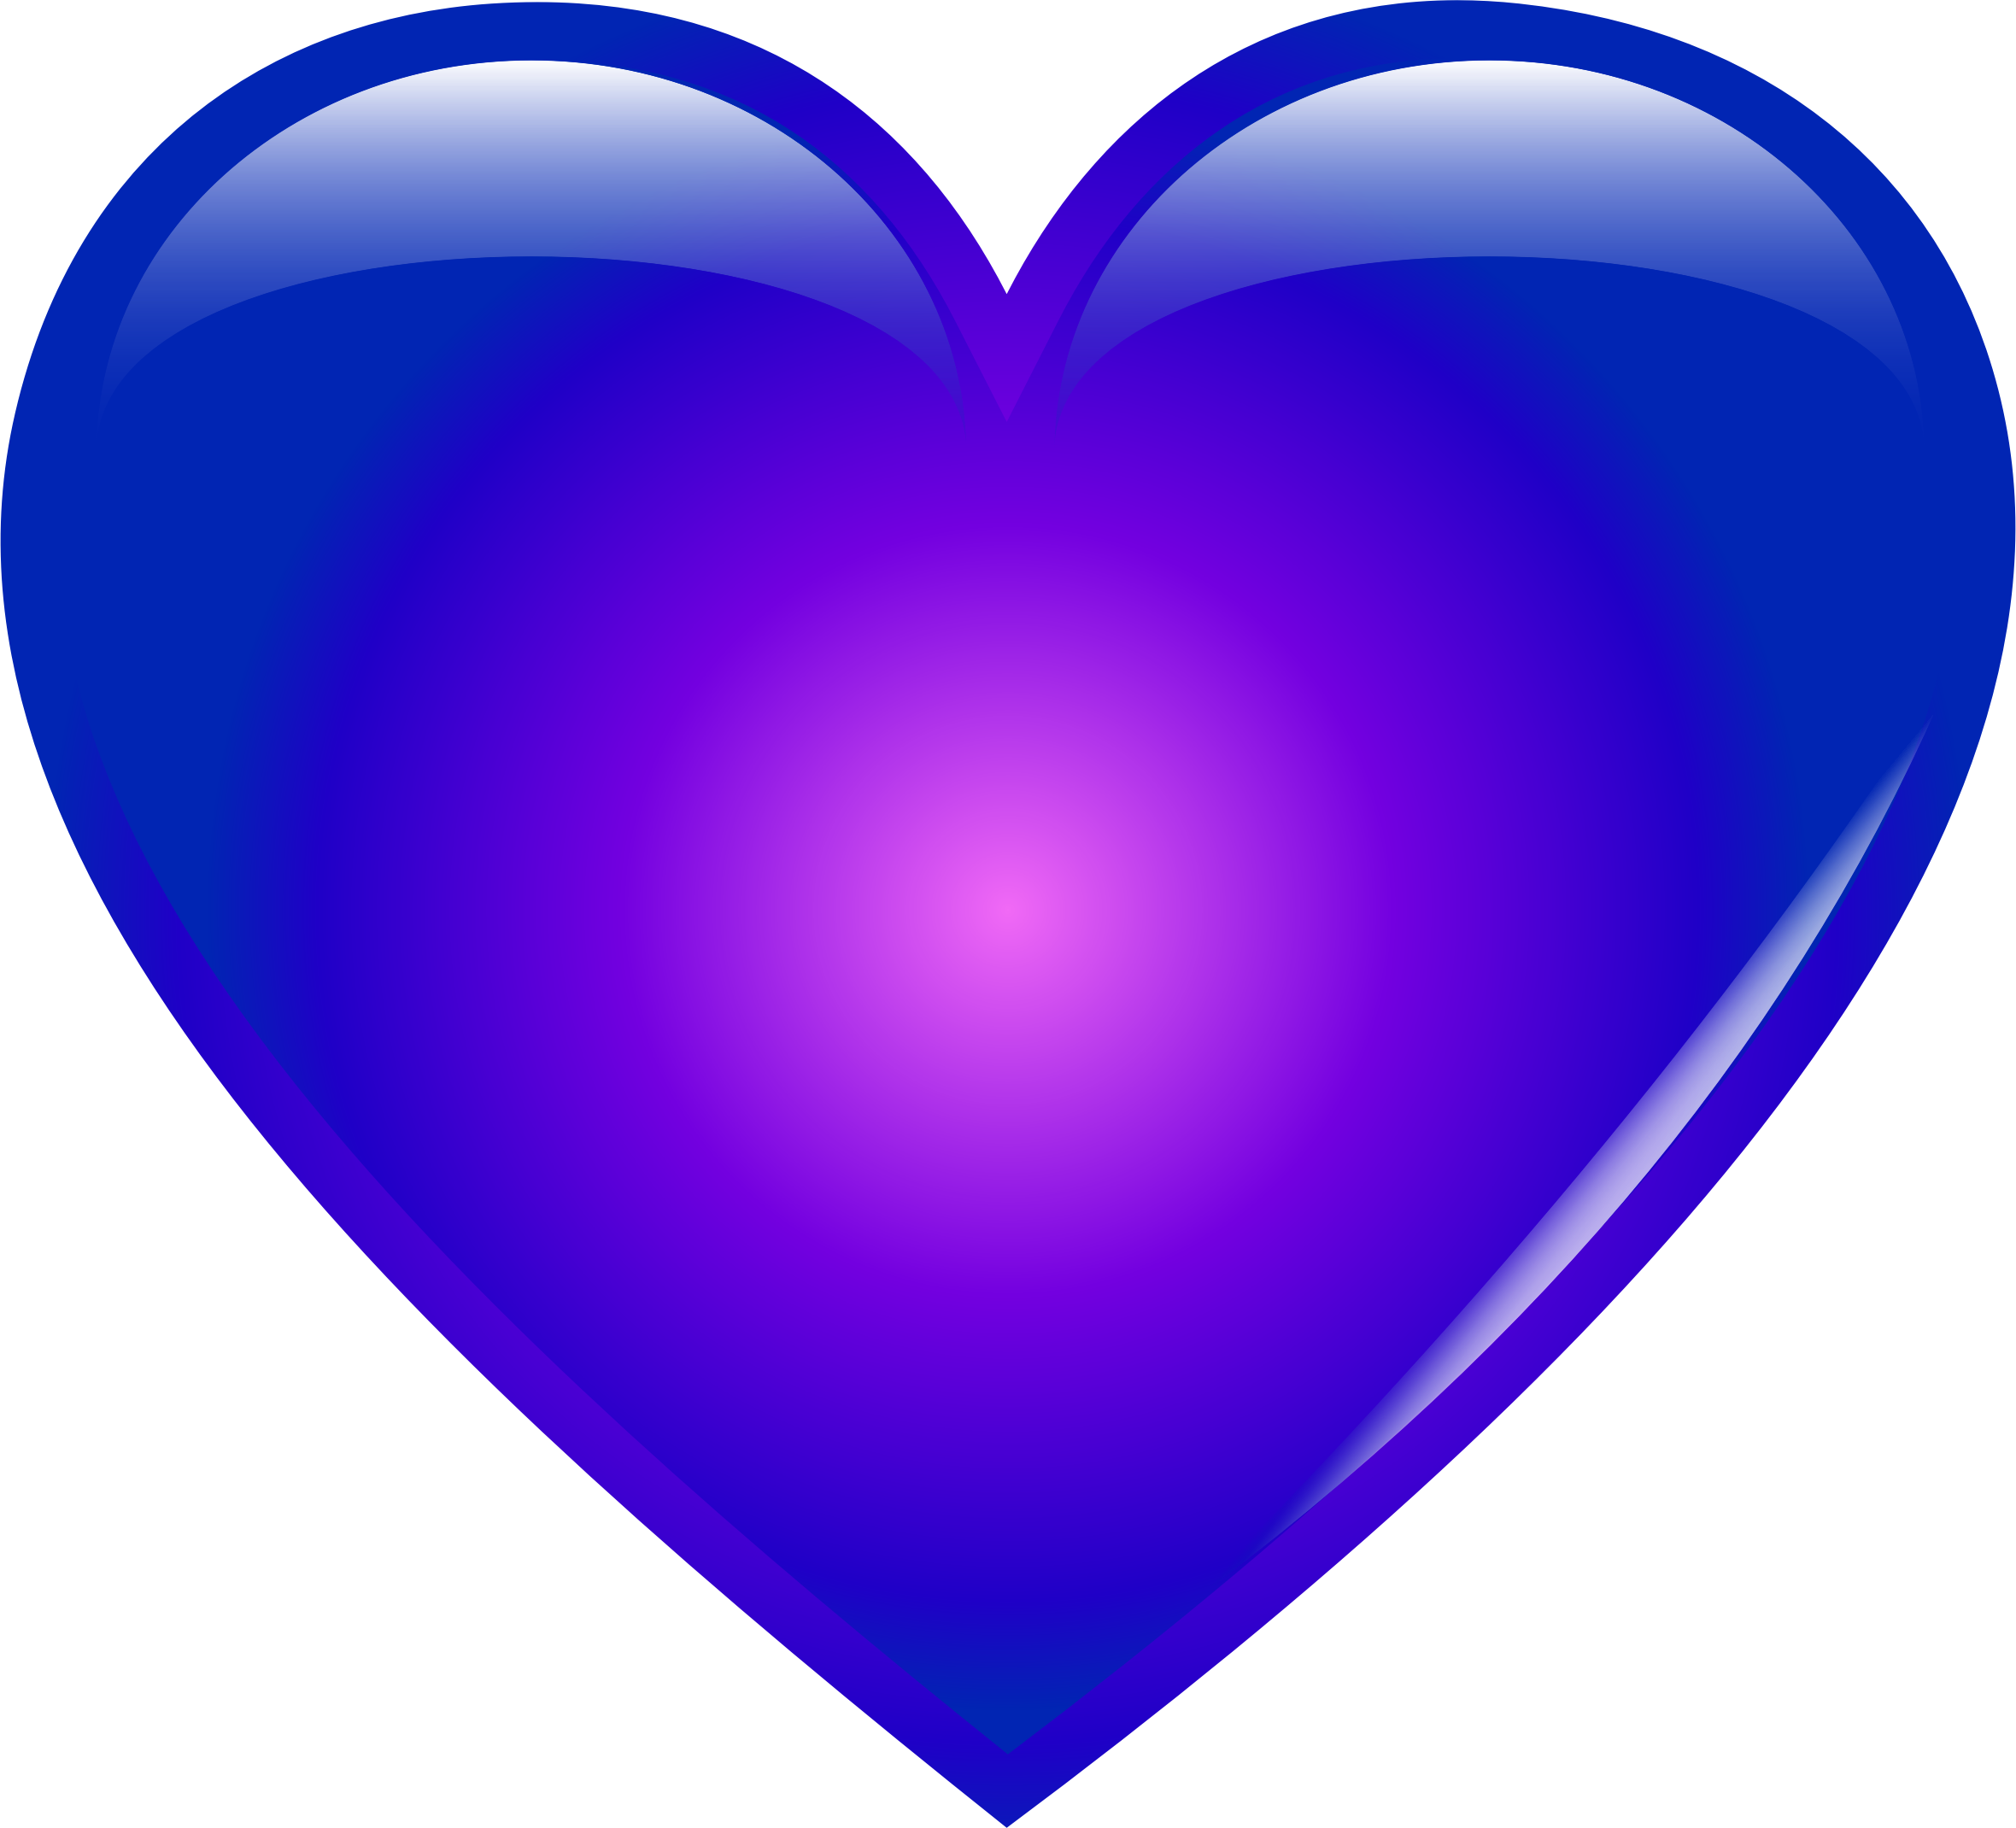 Blue Heart by GDJ